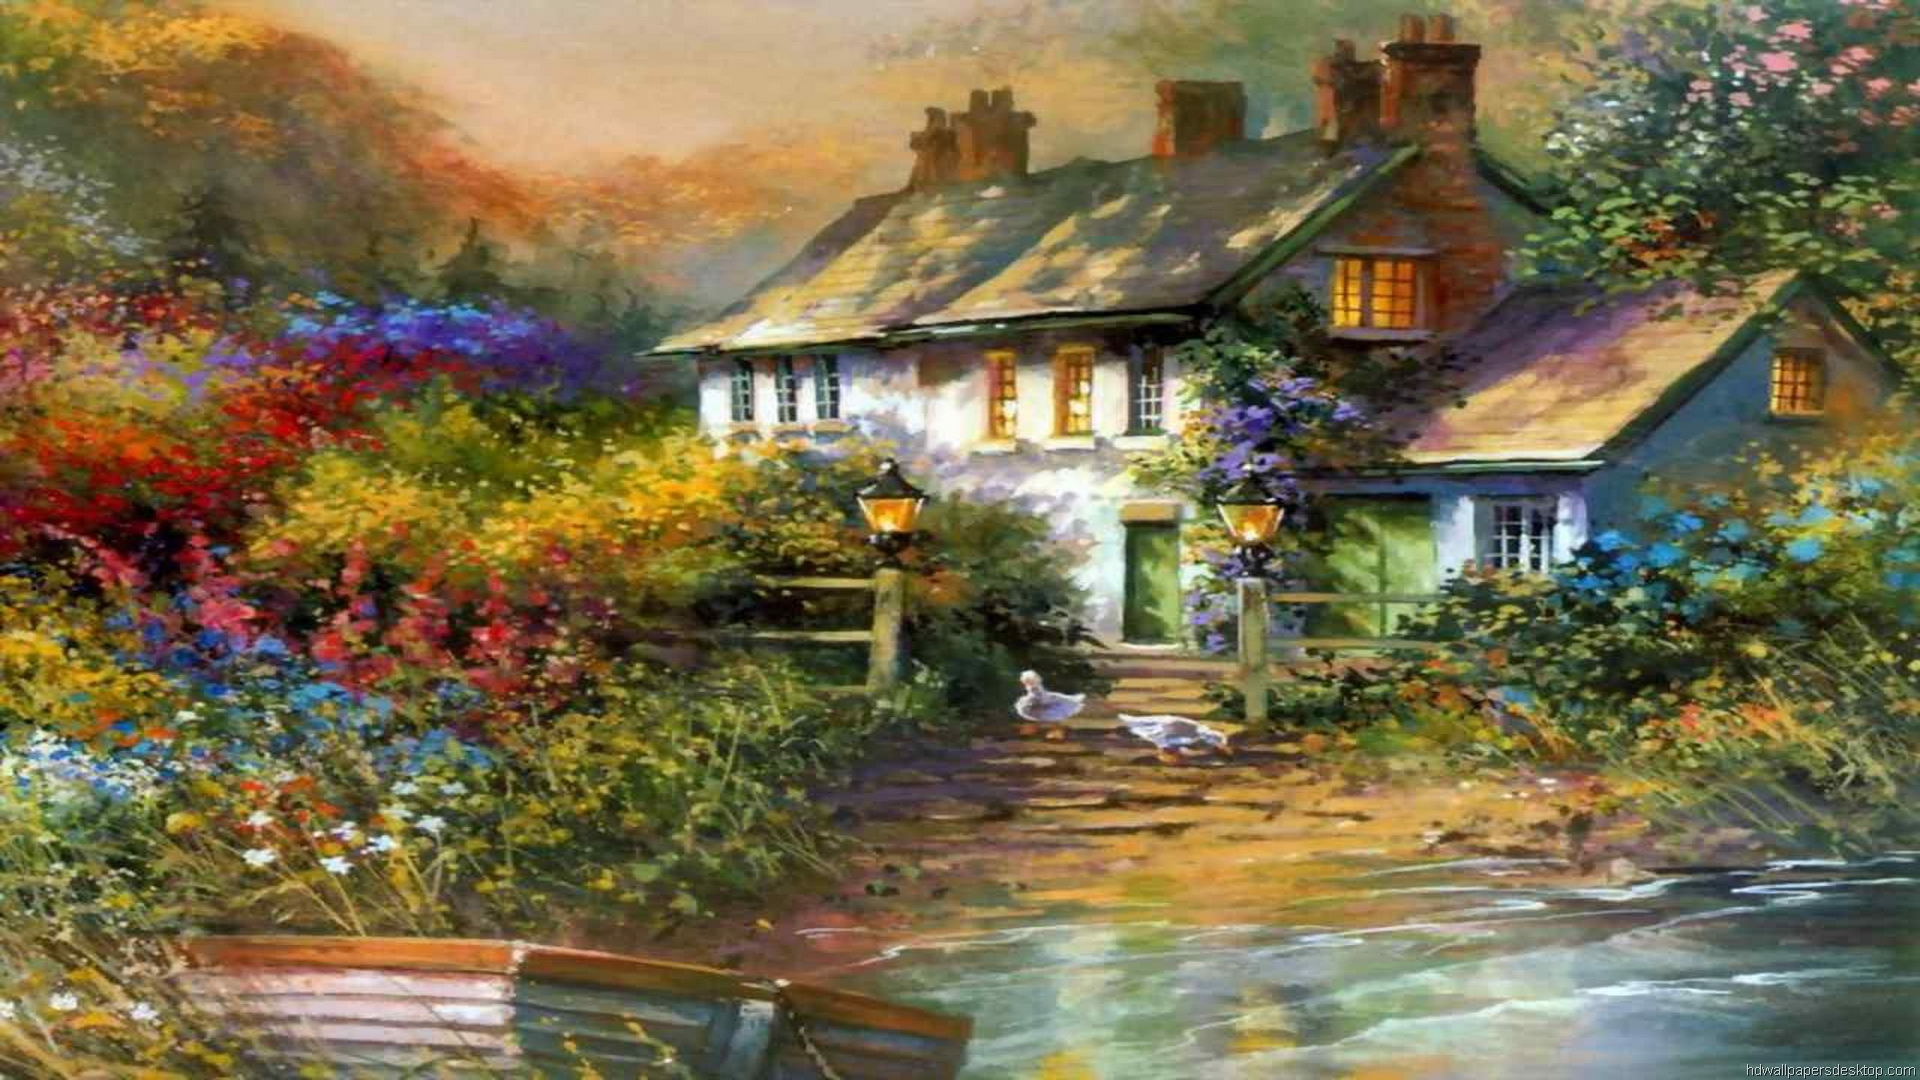 Thomas kinkade fall desktop wallpaper wallpapersafari for Home painting images